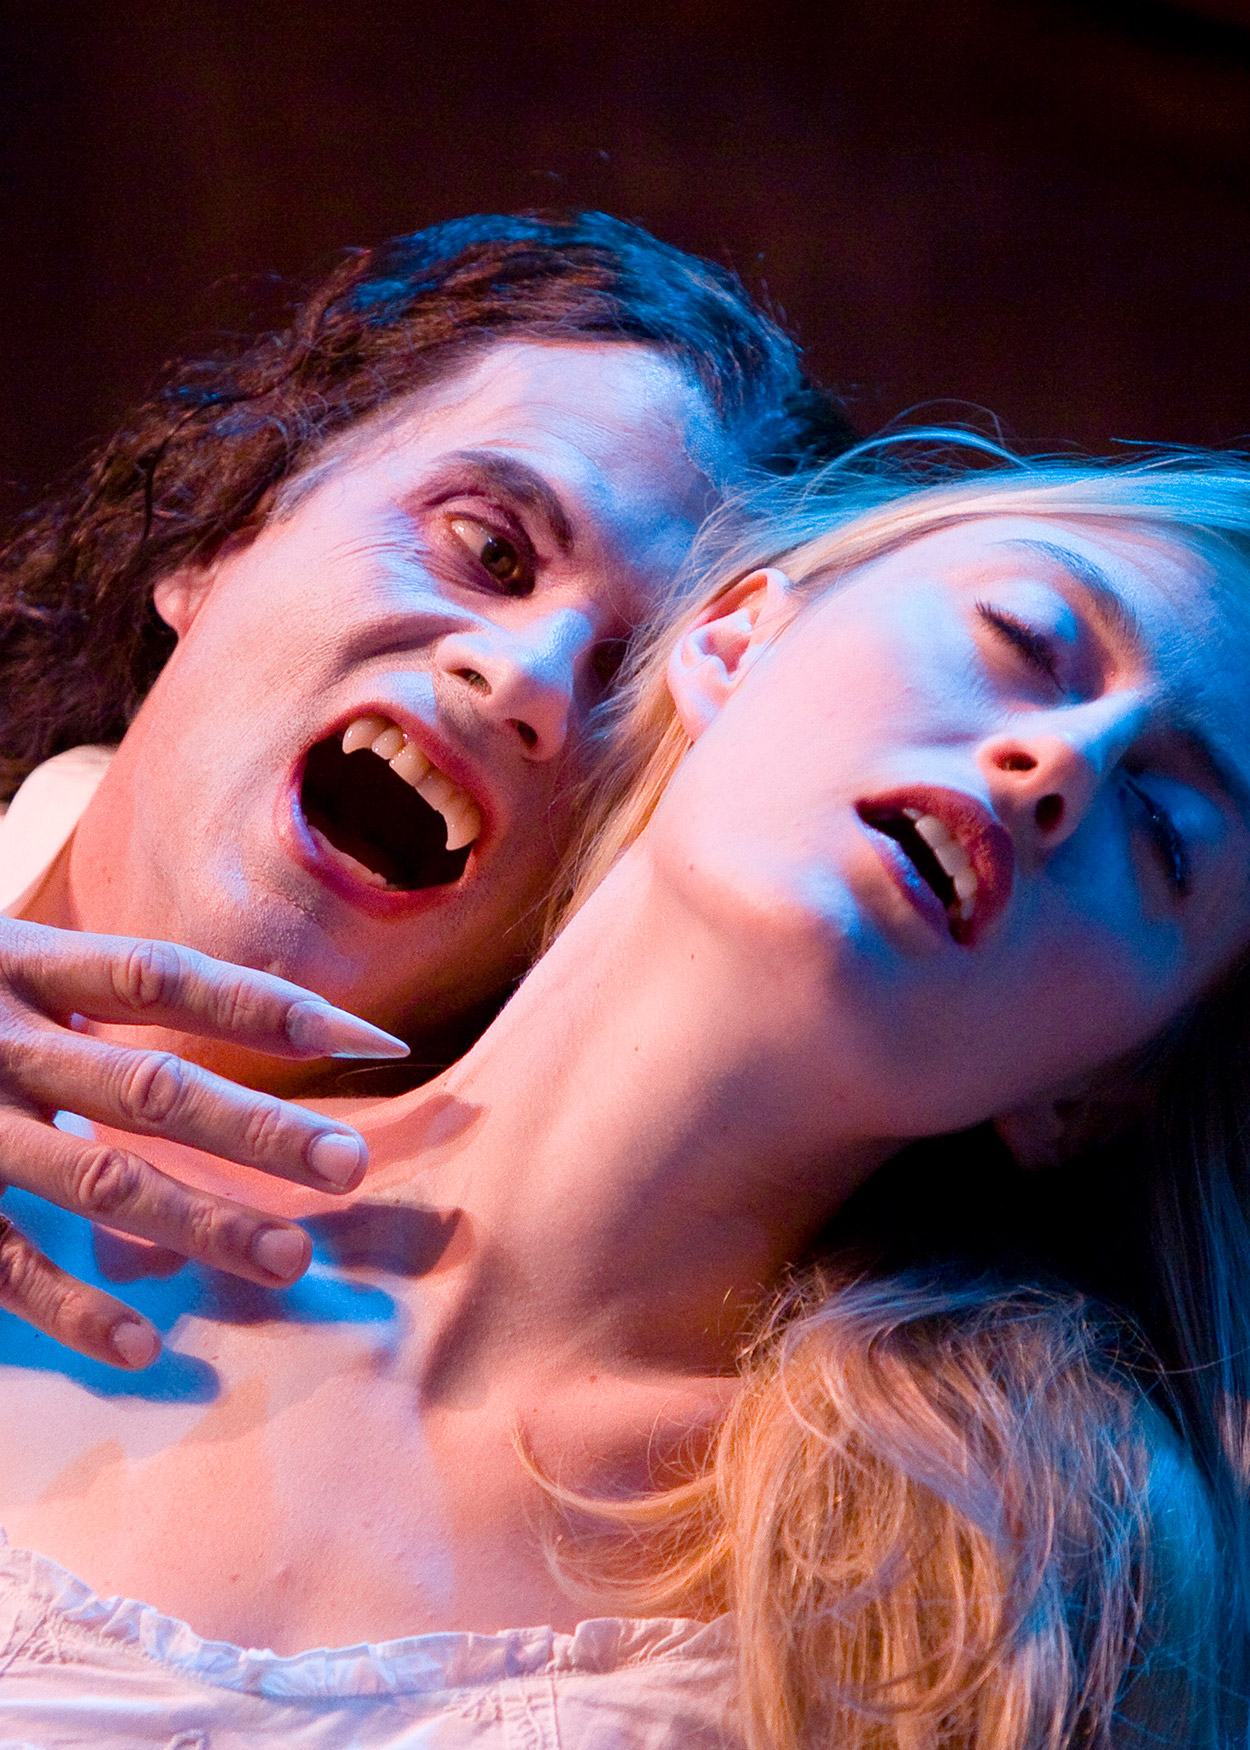 Dracula biting the neck of a woman